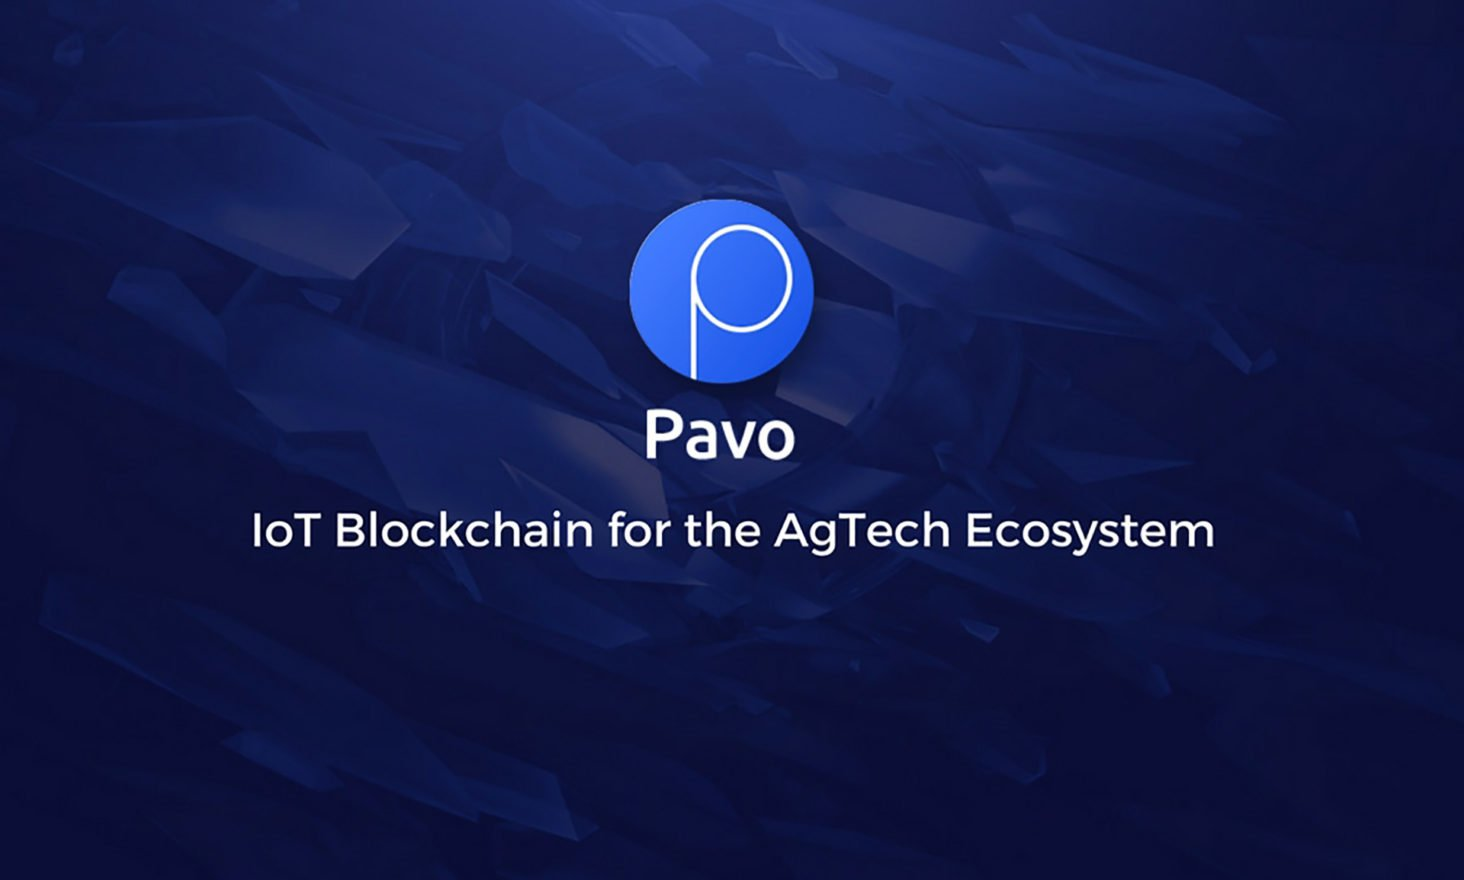 Pavo Performs Ongoing California Installations of Their IoT Blockchain Solution for Agriculture